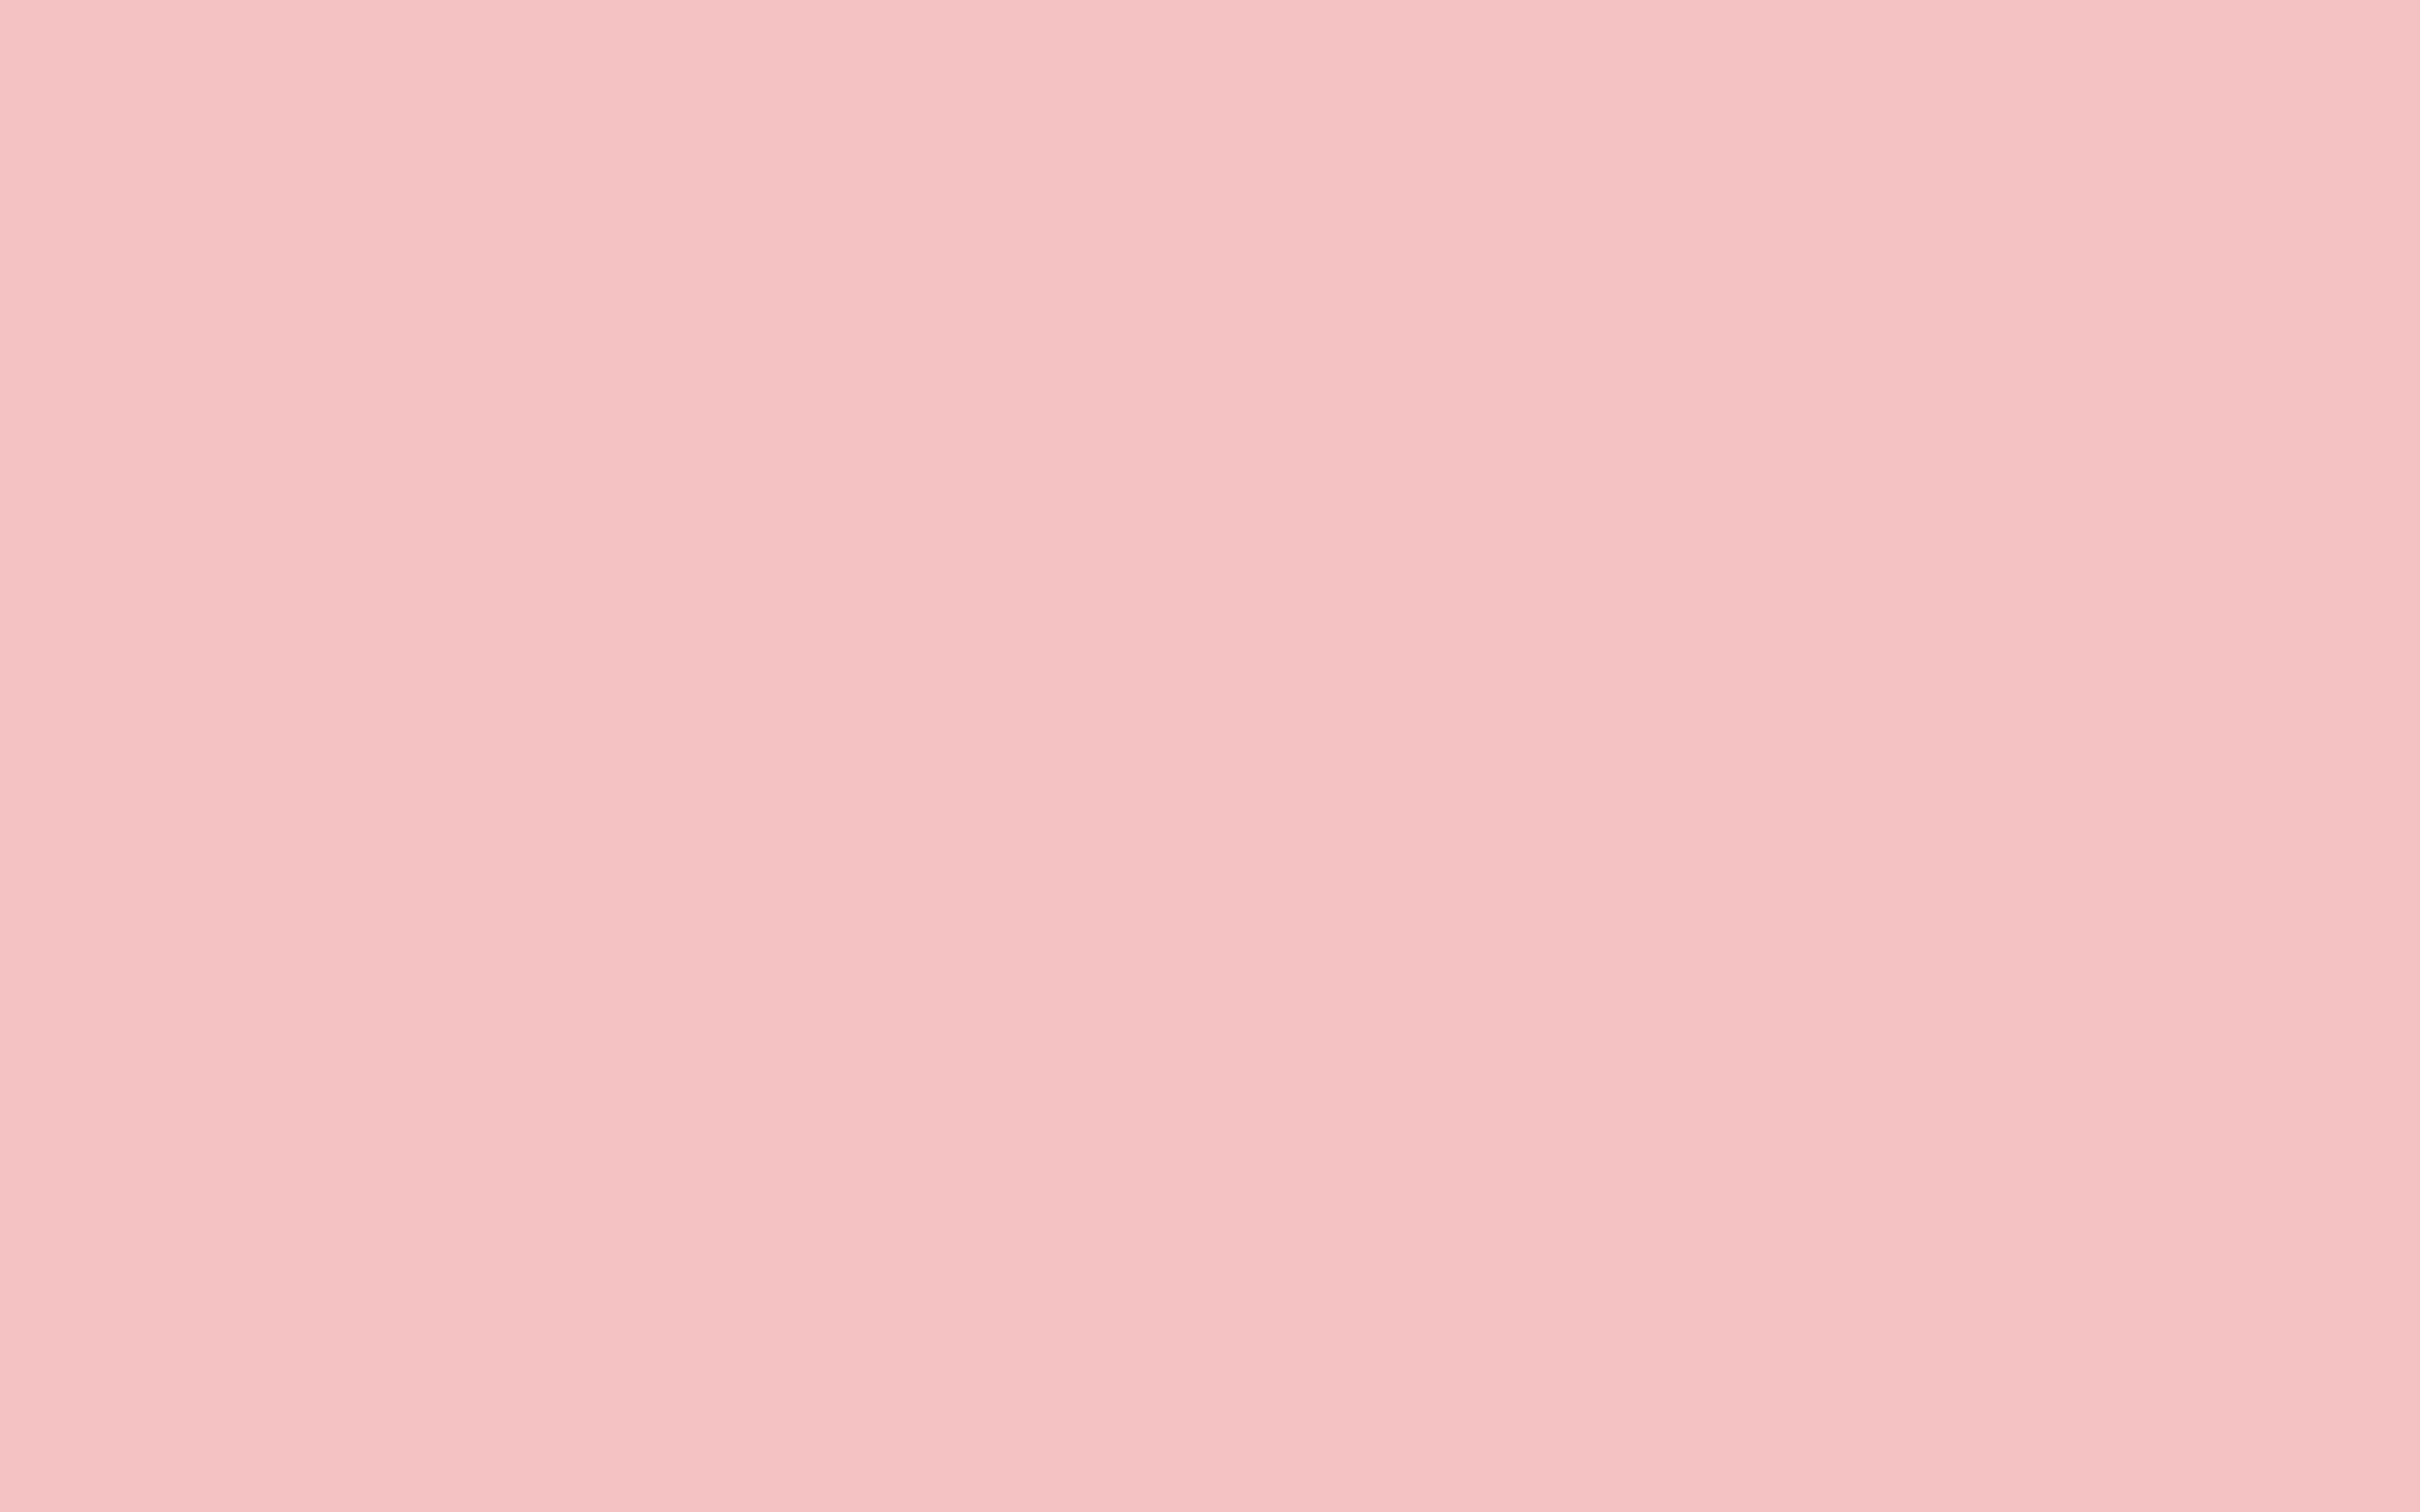 The 29 Decorative Baby Pink Color